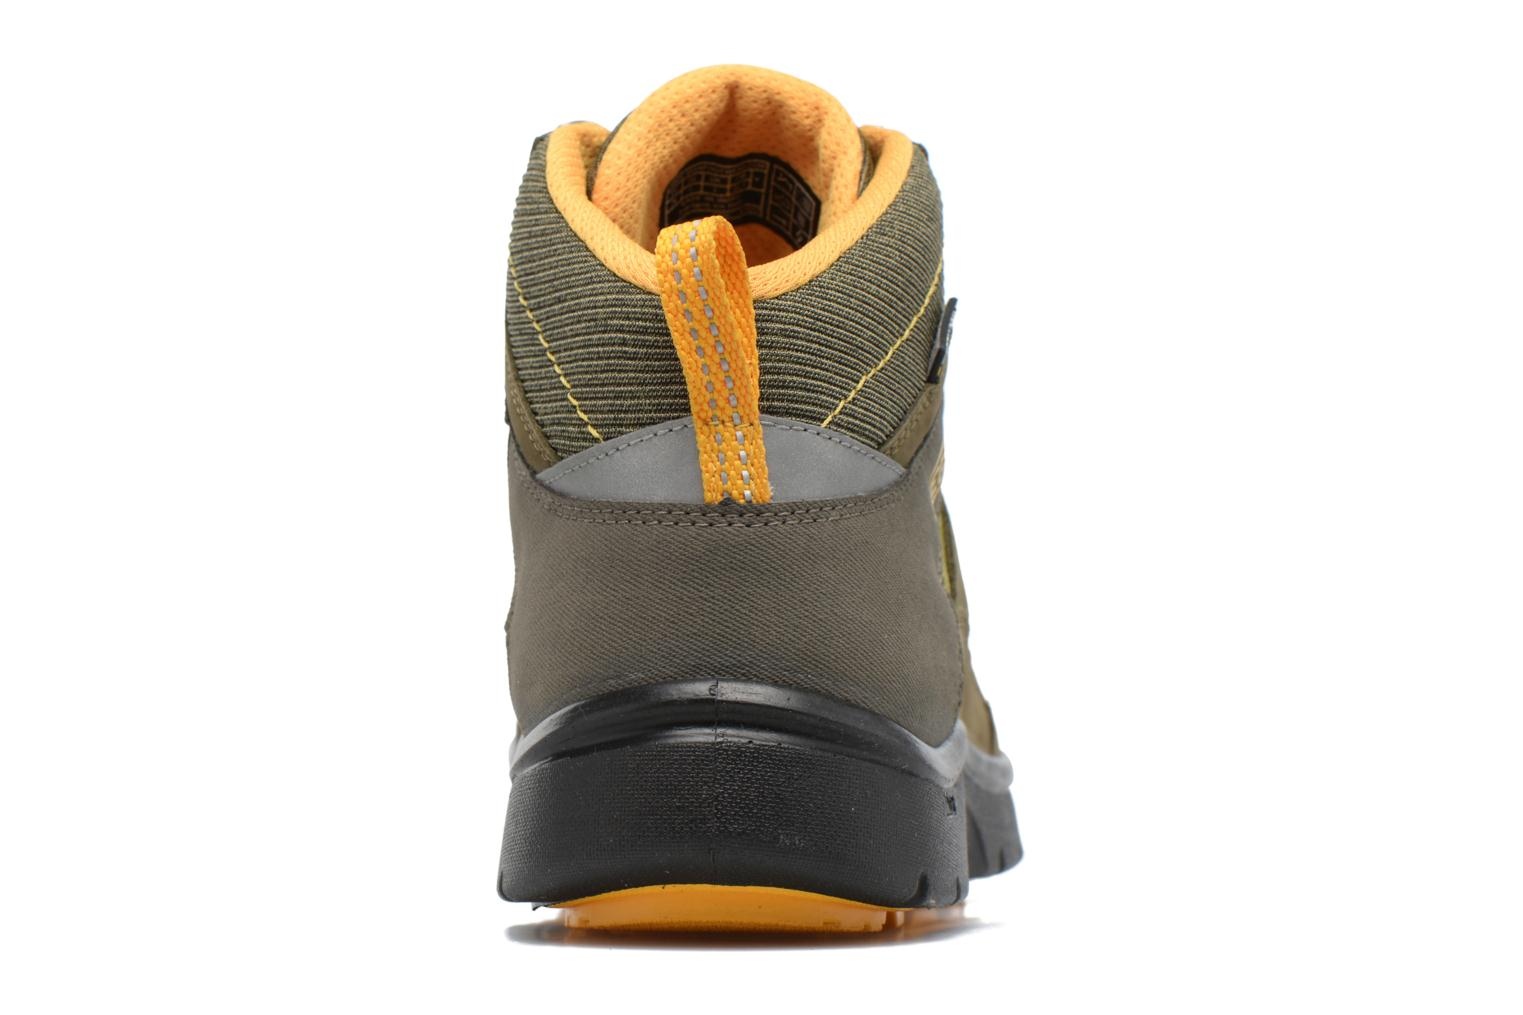 Hikeport Mid youth Dark Olive/Citrus